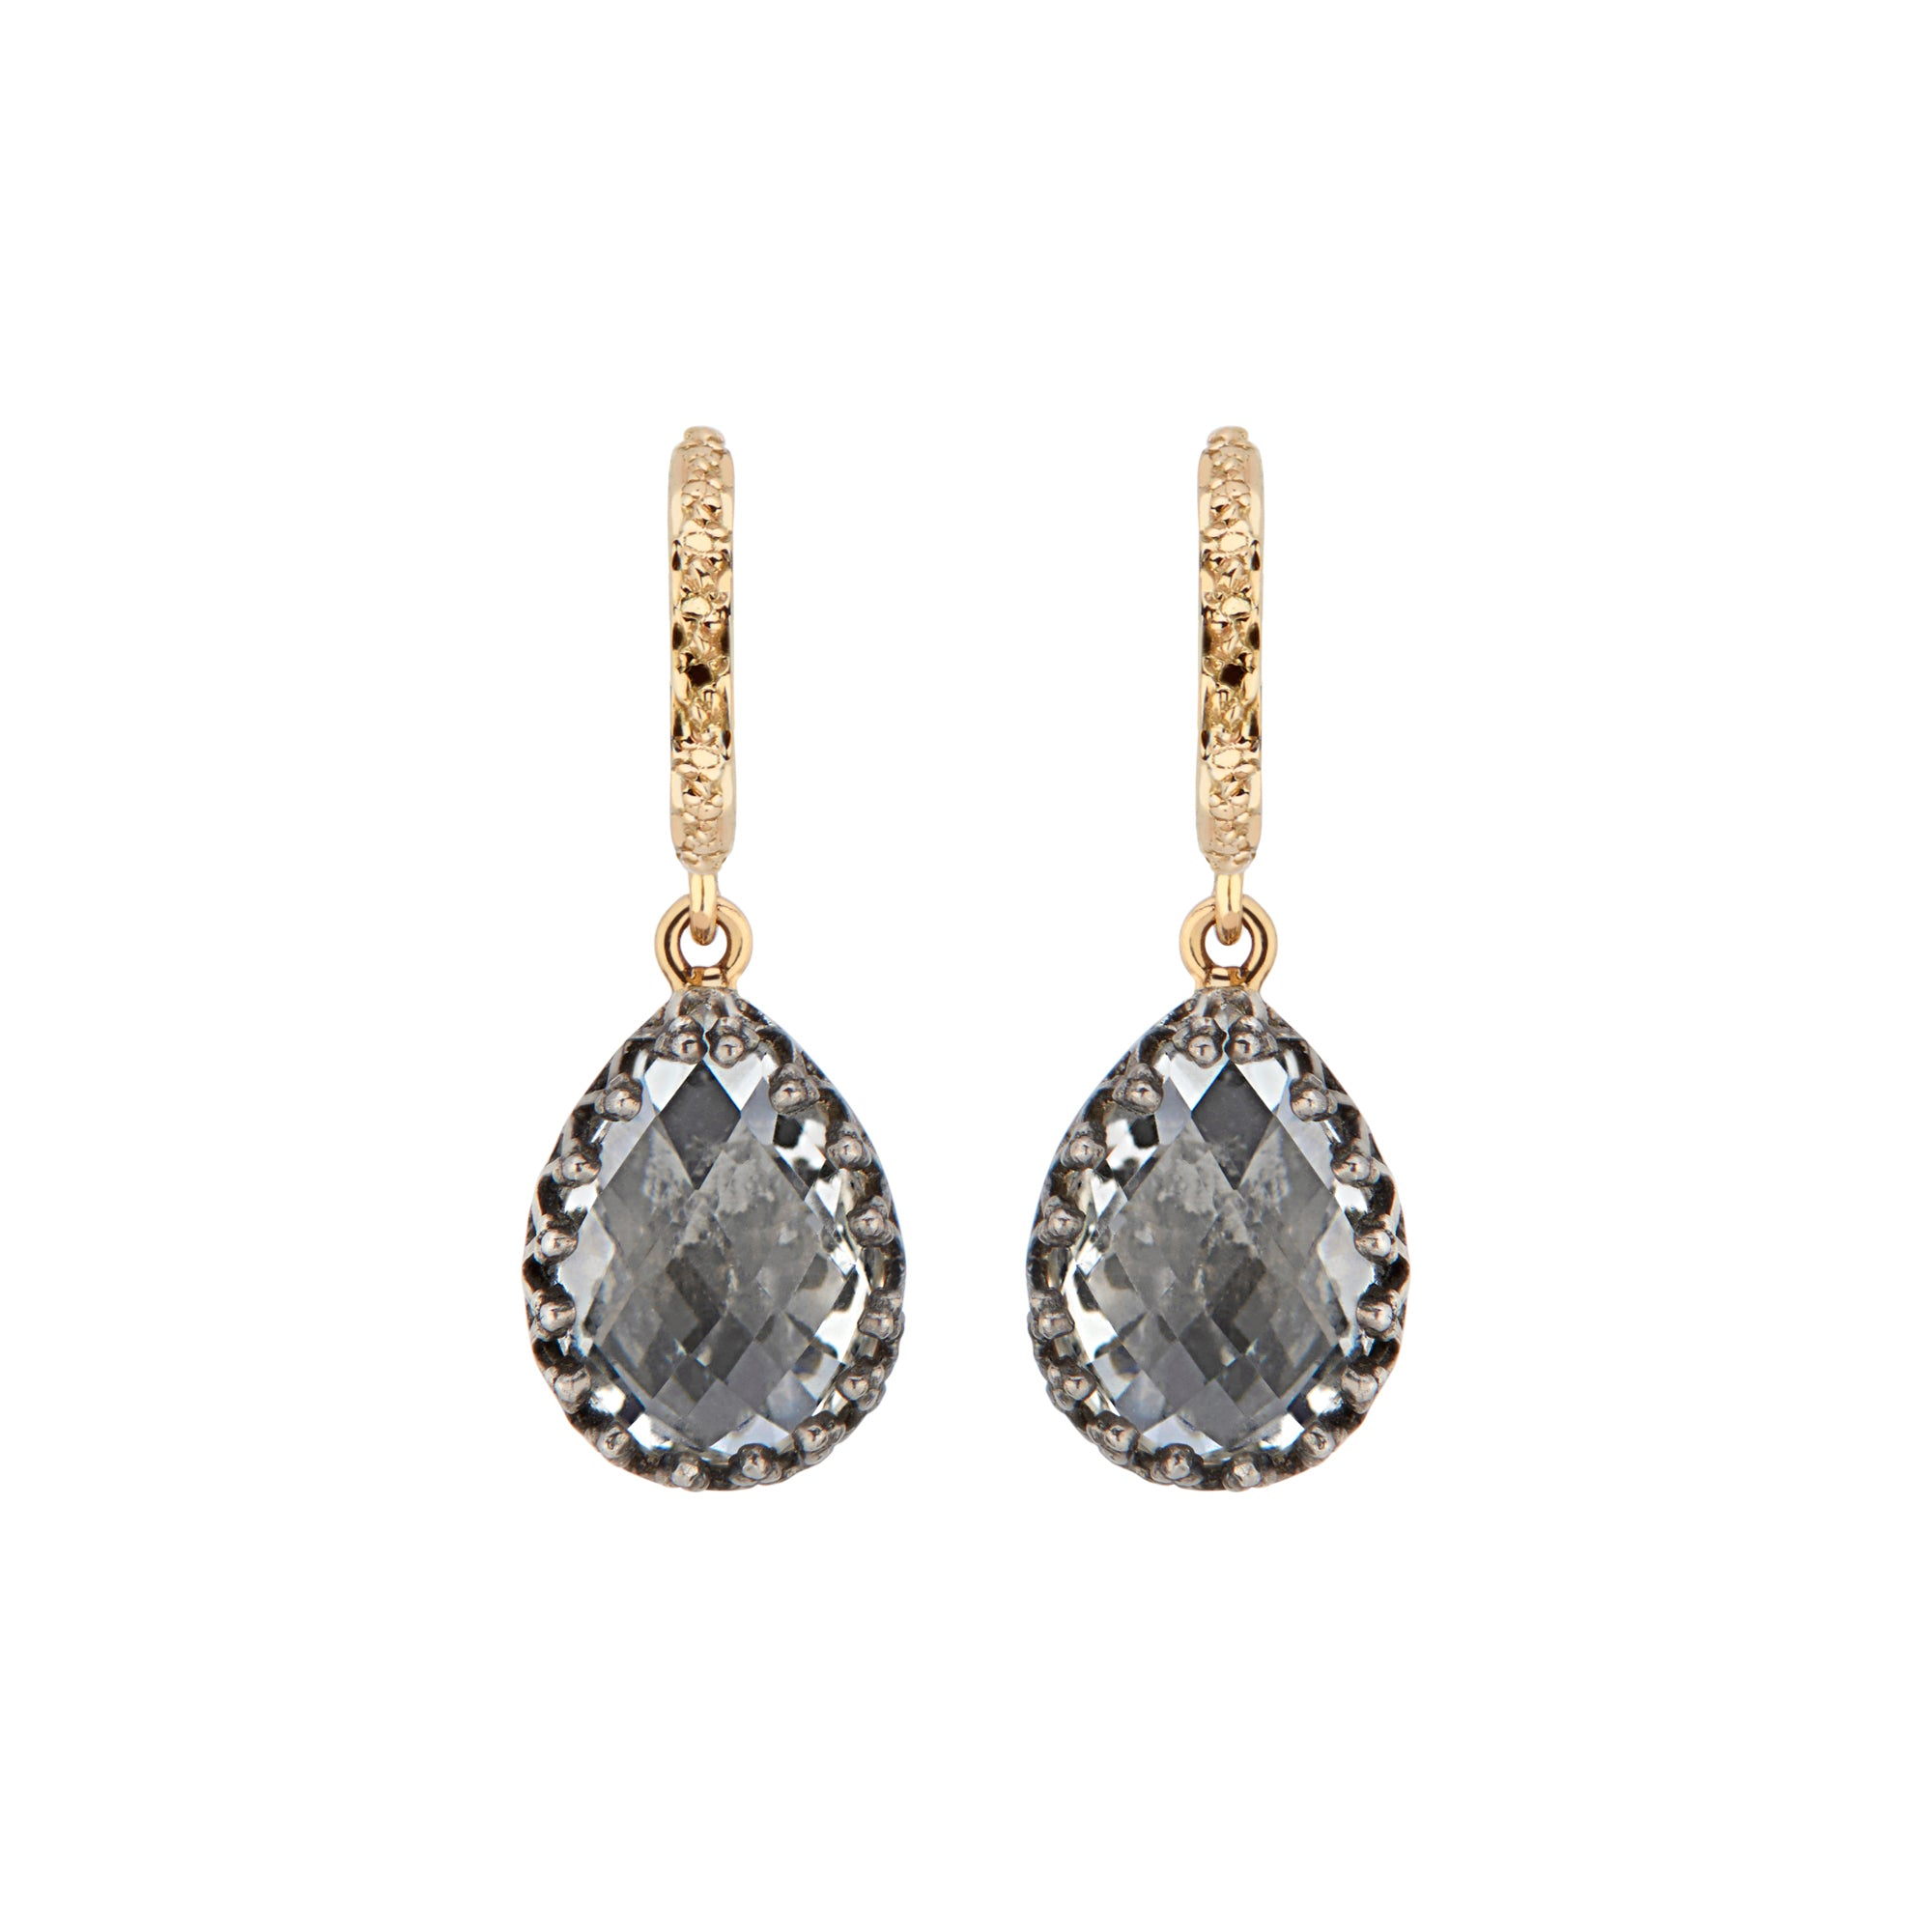 Lady Jane Small Pear Drop Earrings by Larkspur & Hawk for Broken English Jewelry